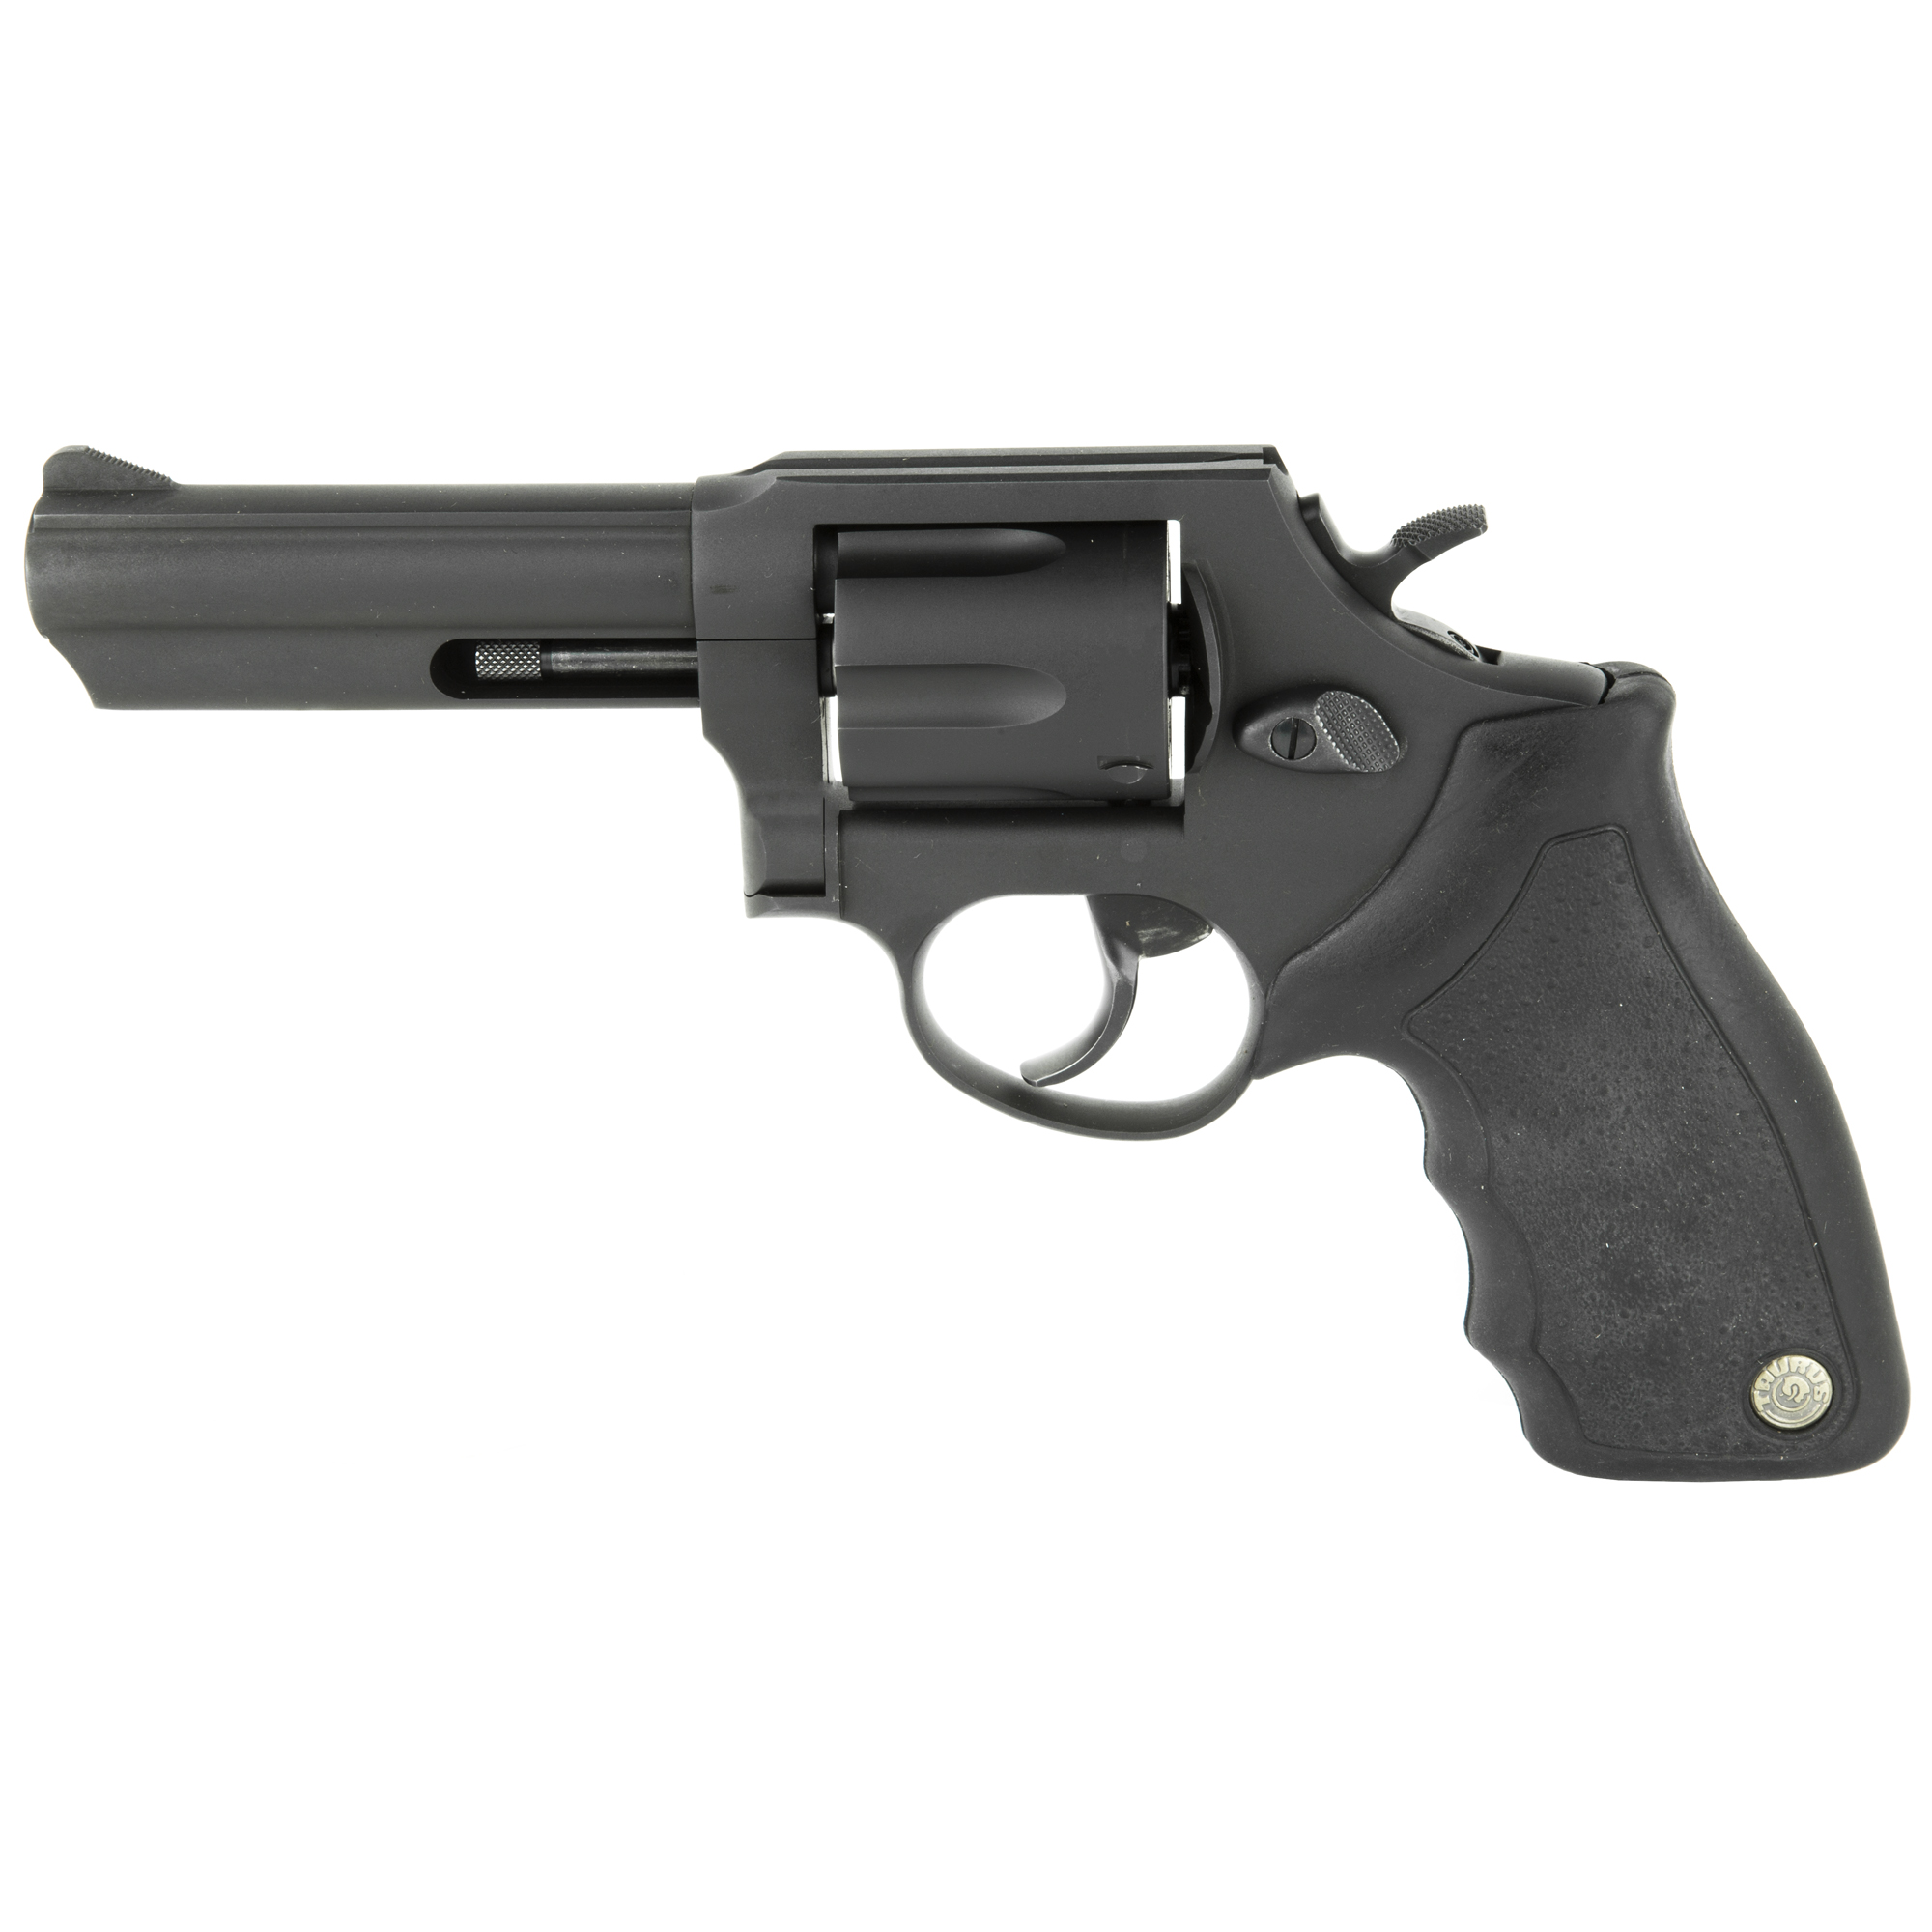 """With fixed sights and a custom Single Action/Double Action trigger for improved accuracy and speed"""" the 82 is the perfect revolver for whatever trouble lurks around the corner."""